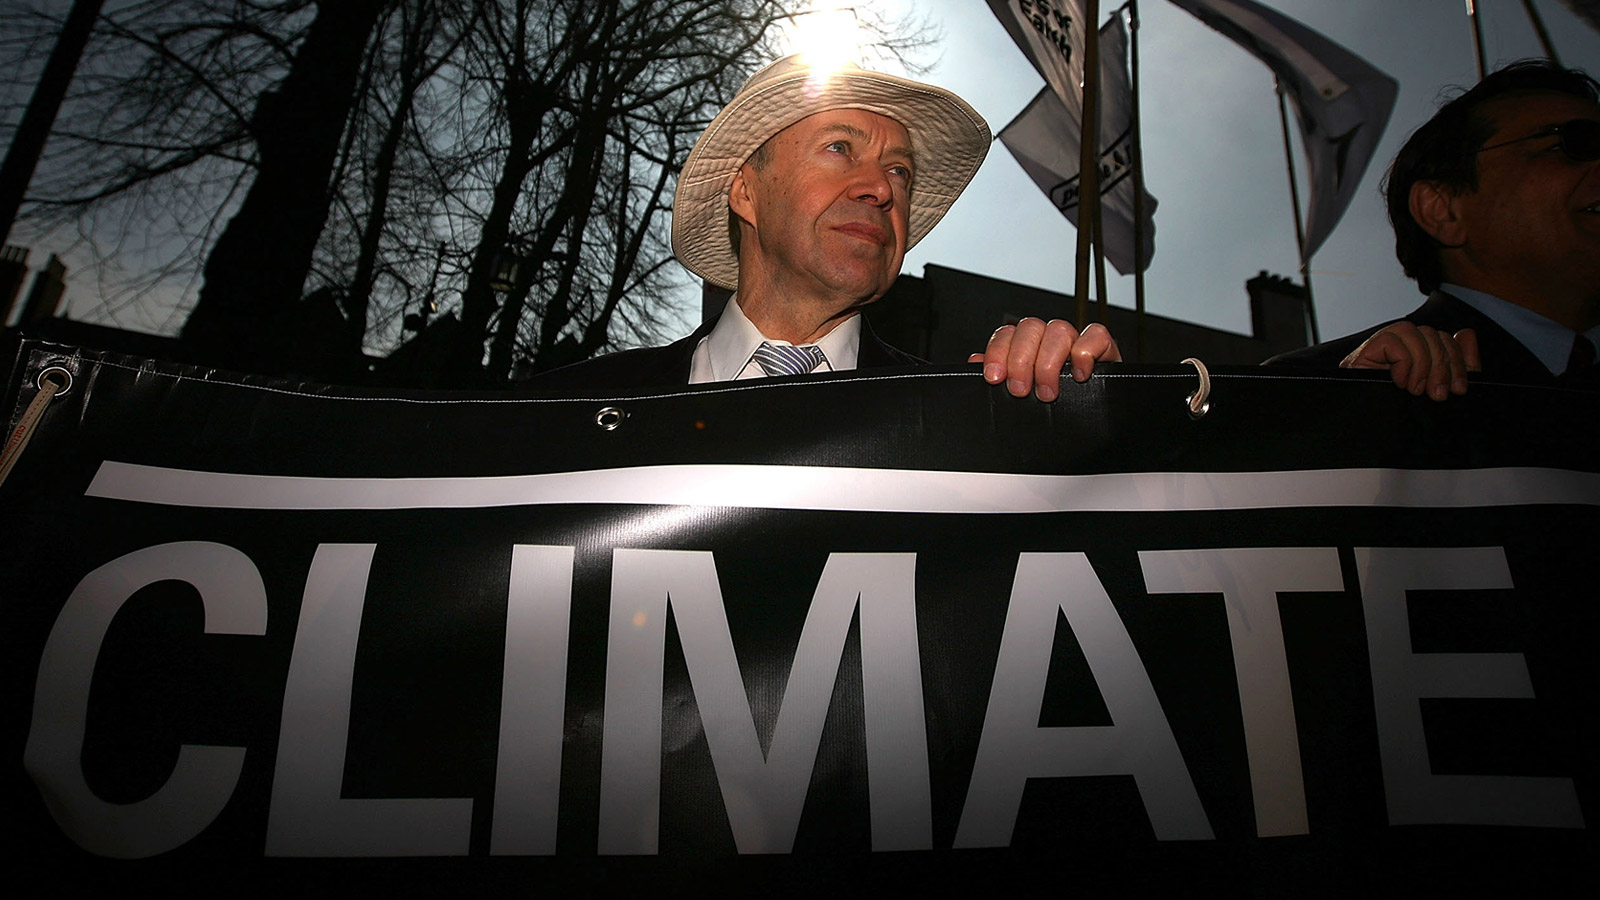 NASA scientist and climatologist James Hansen takes part in a mock funeral parade during a Climate Change Campaign Action Day on March 19, 2009 in Coventry, England.